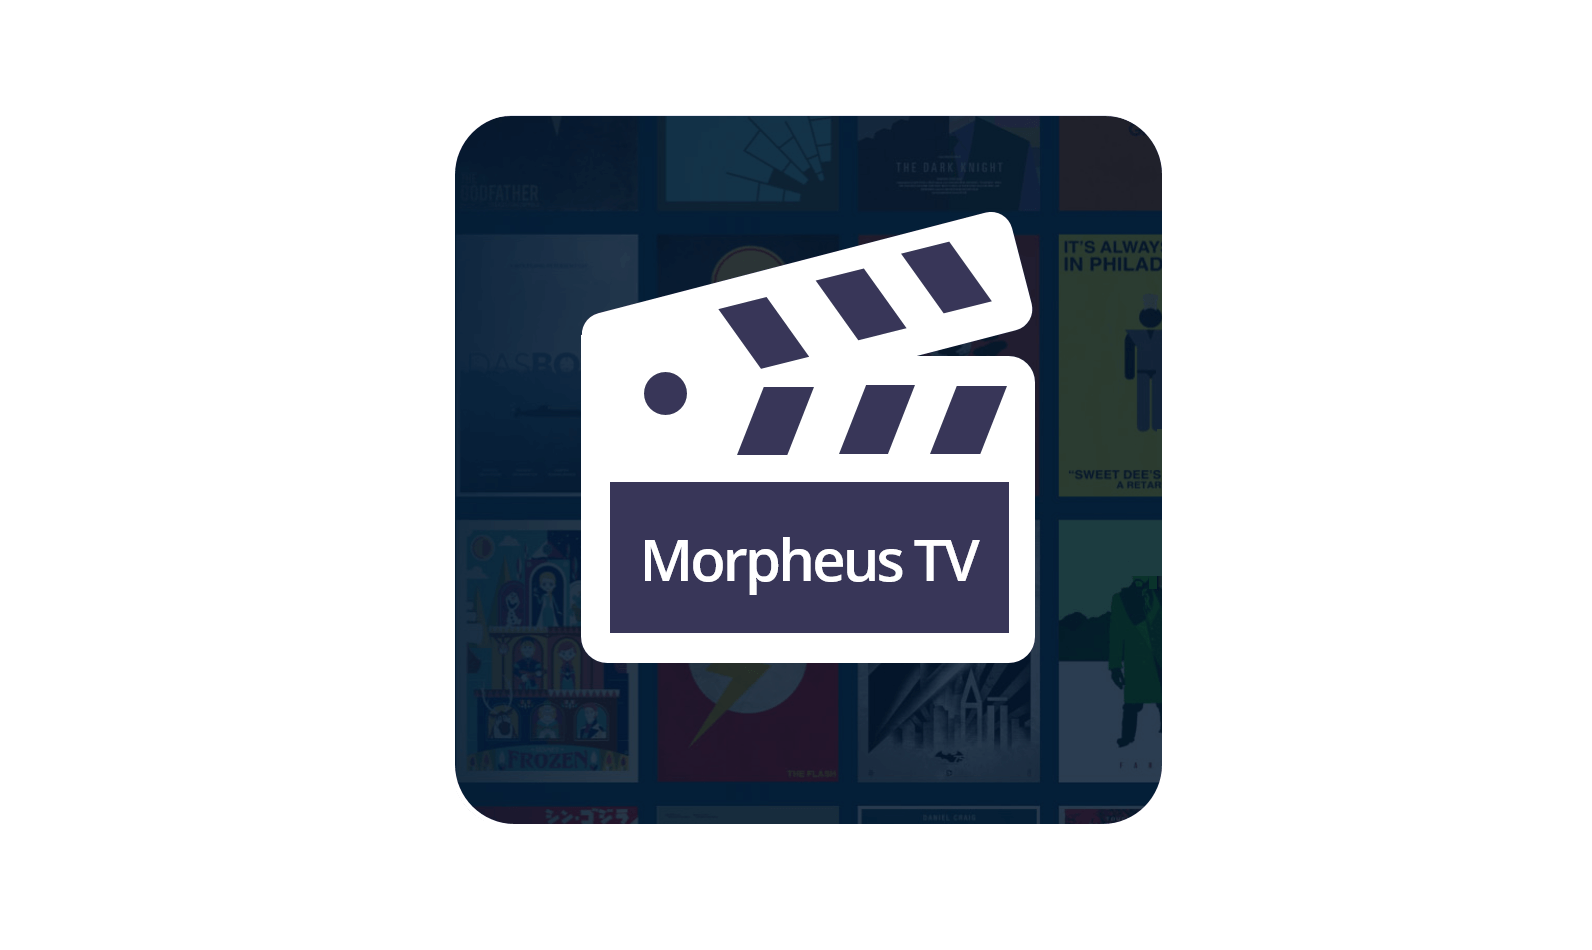 How to Install Morpheus TV on Firestick / Android